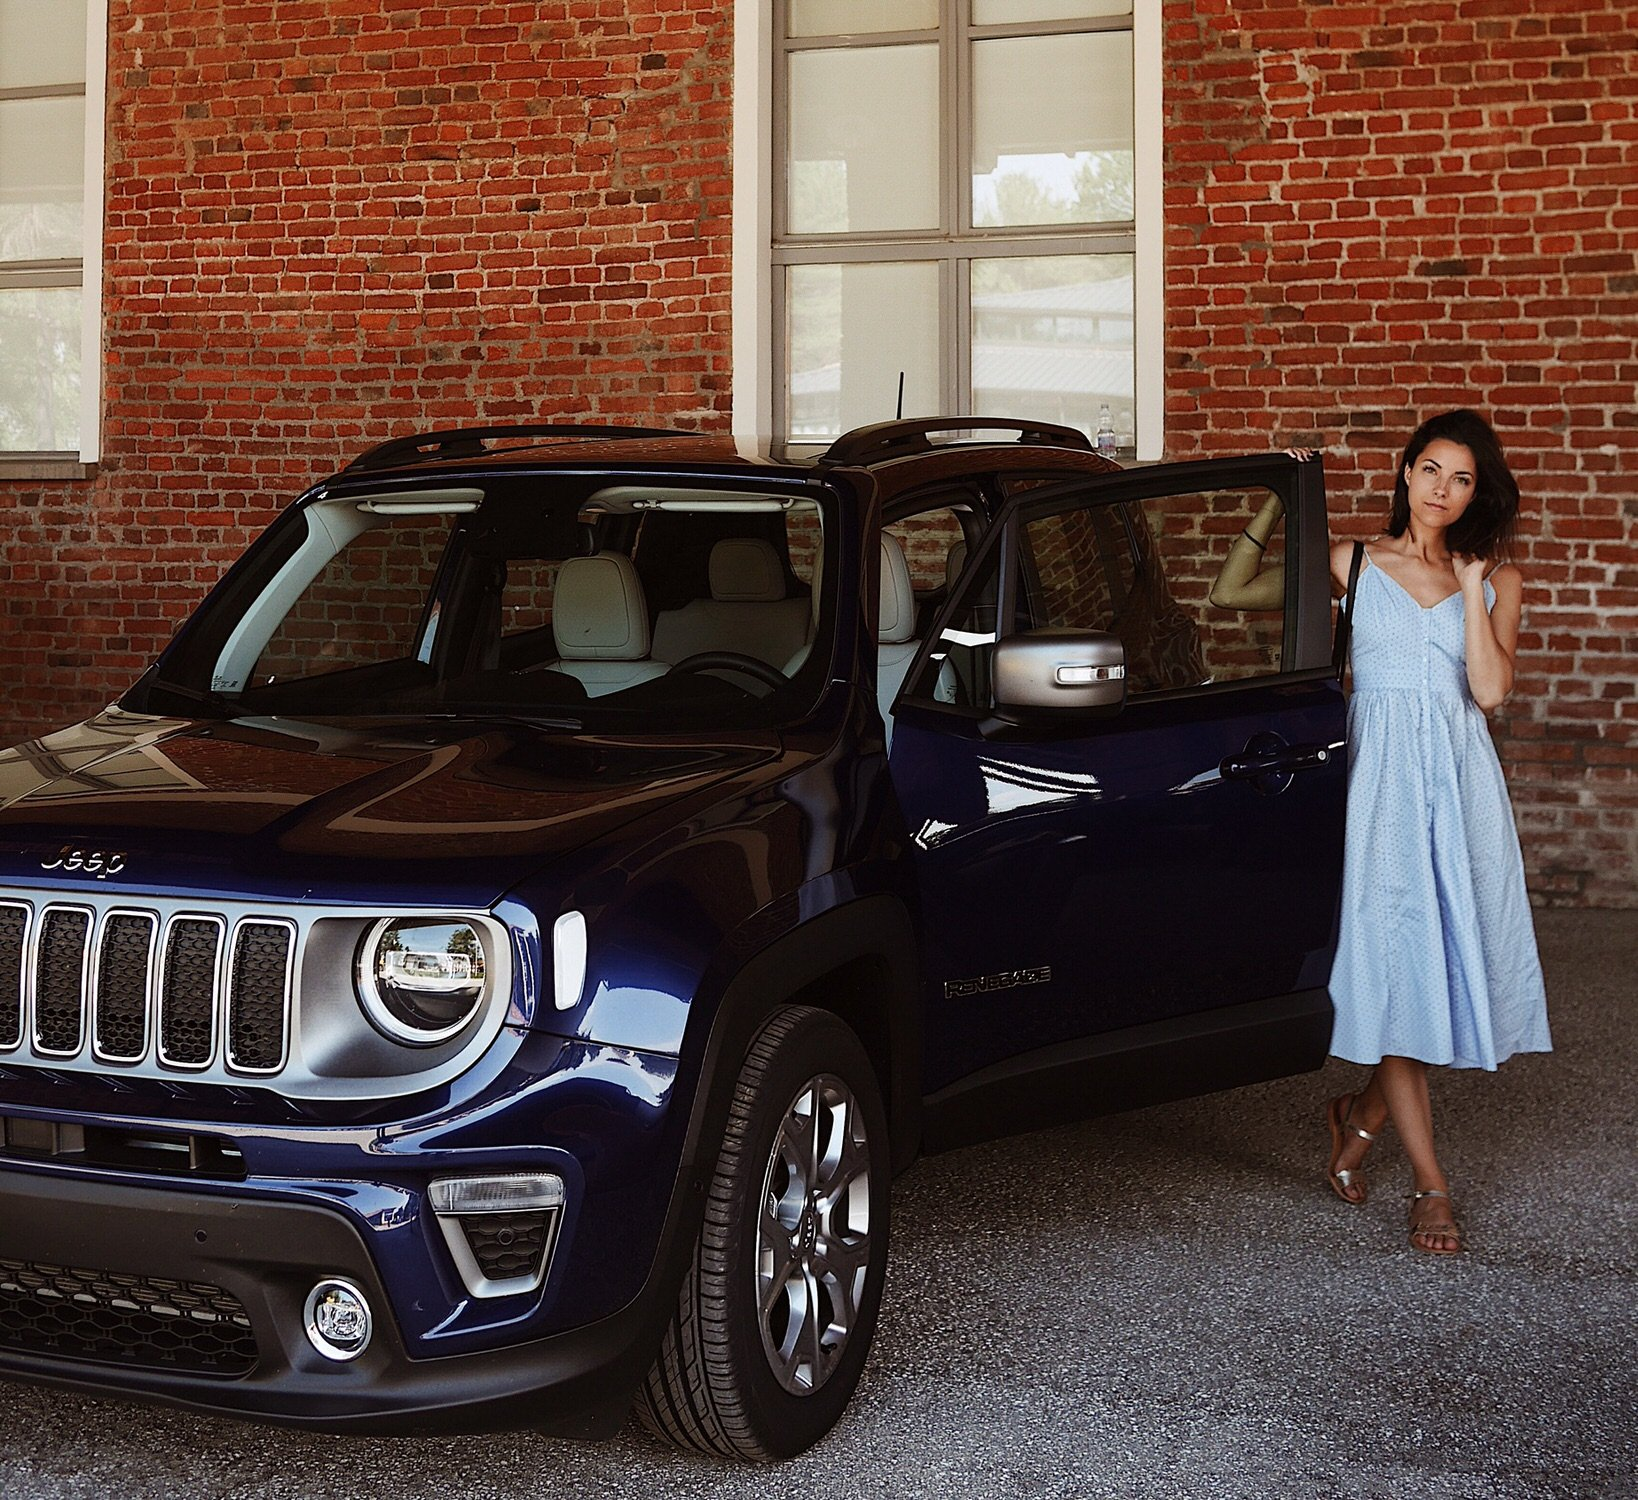 The new Jeep Renegade